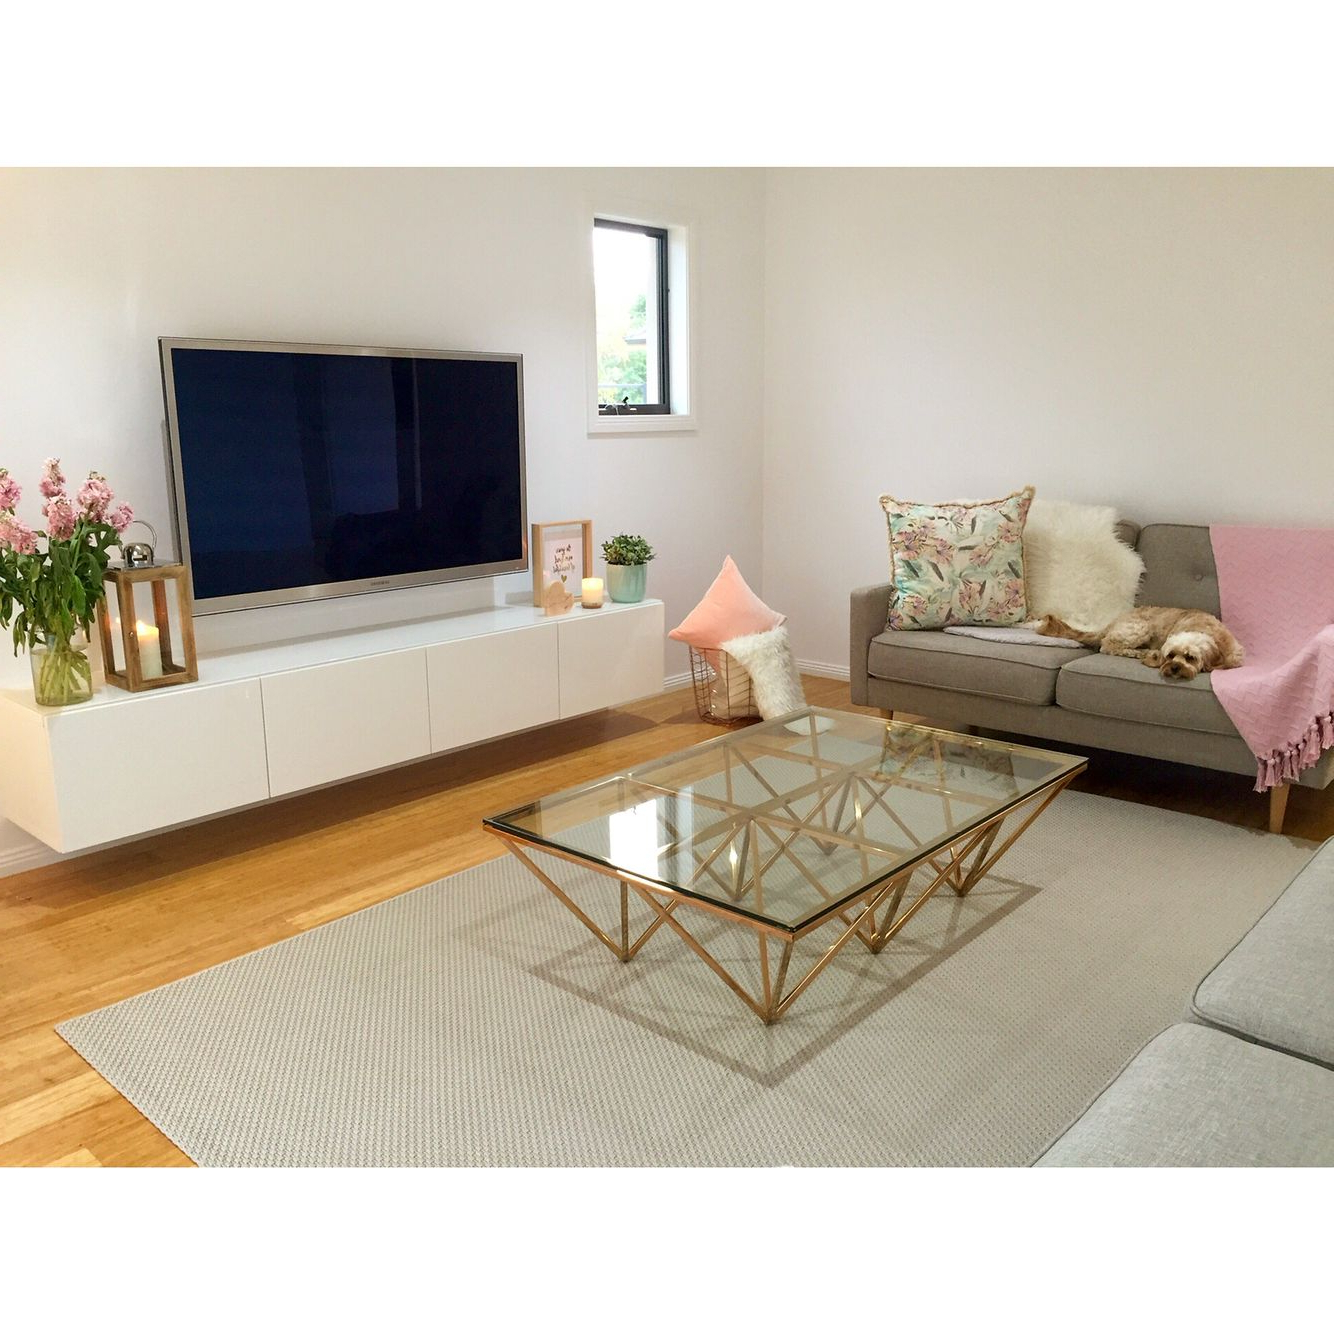 Famous Contemporary Scandinavian Decor, Copper Coffee Table, Floating Tv Within Echo Tv Units (Gallery 19 of 20)